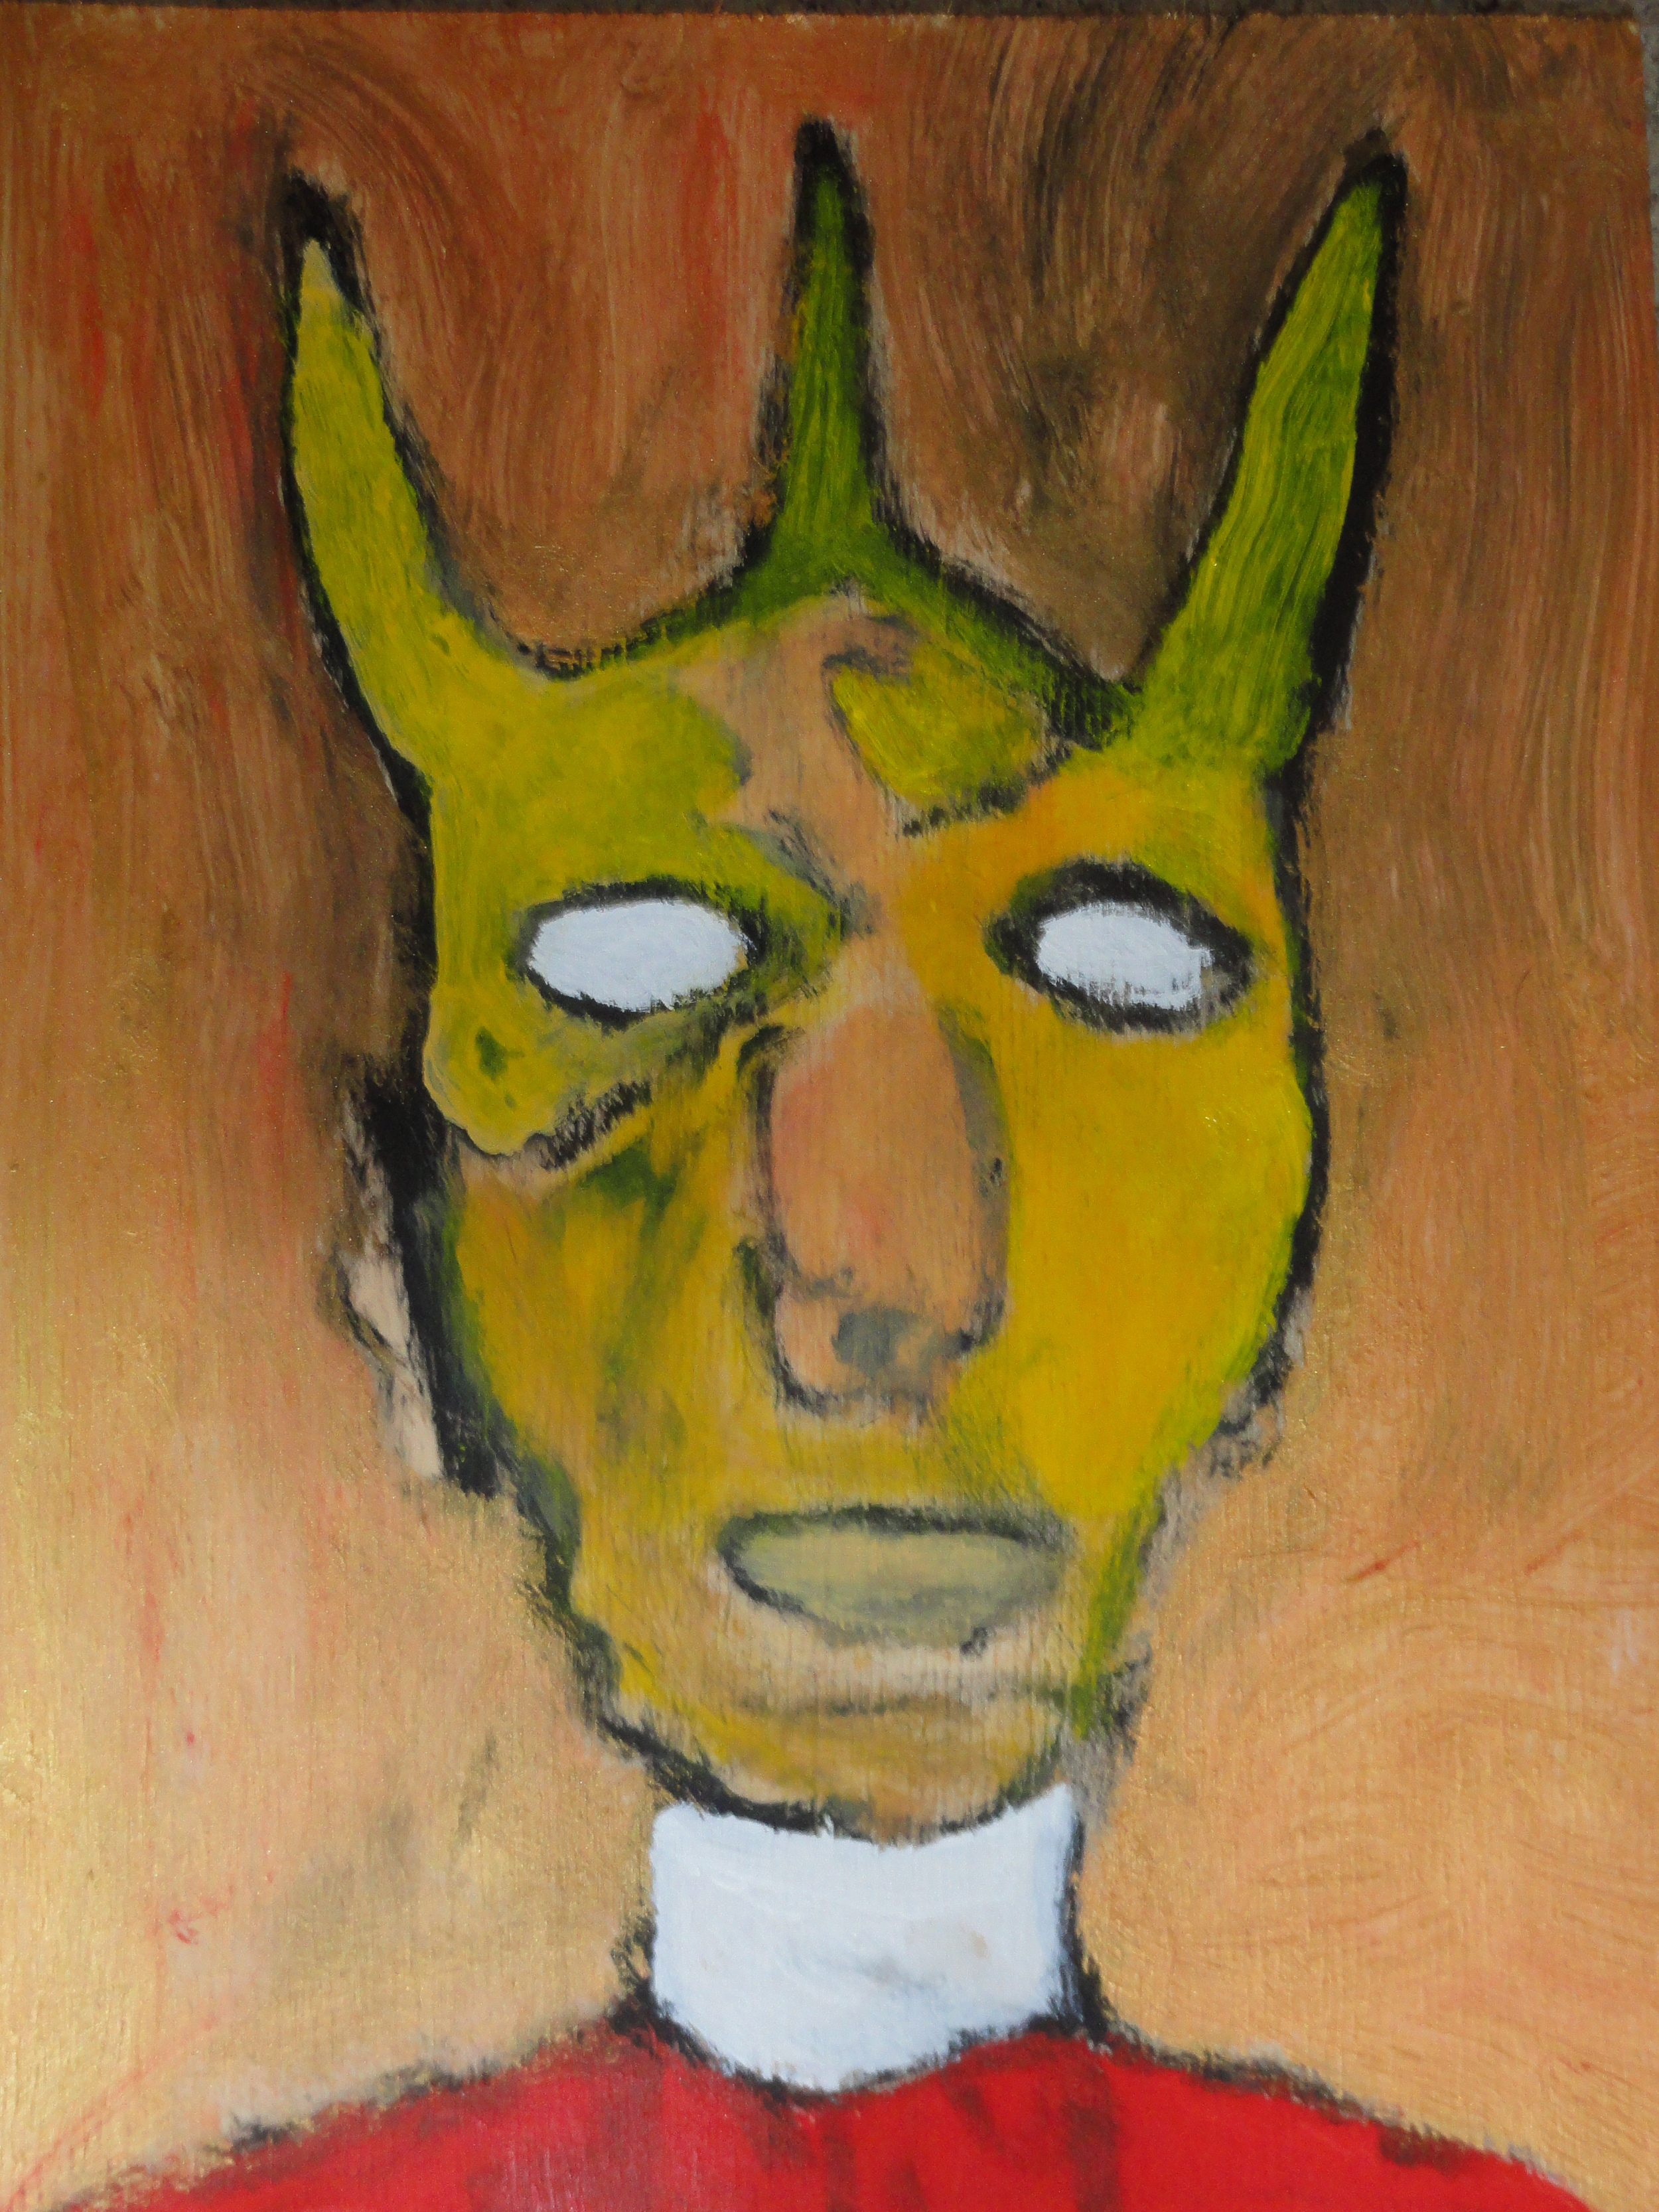 Man With Horns